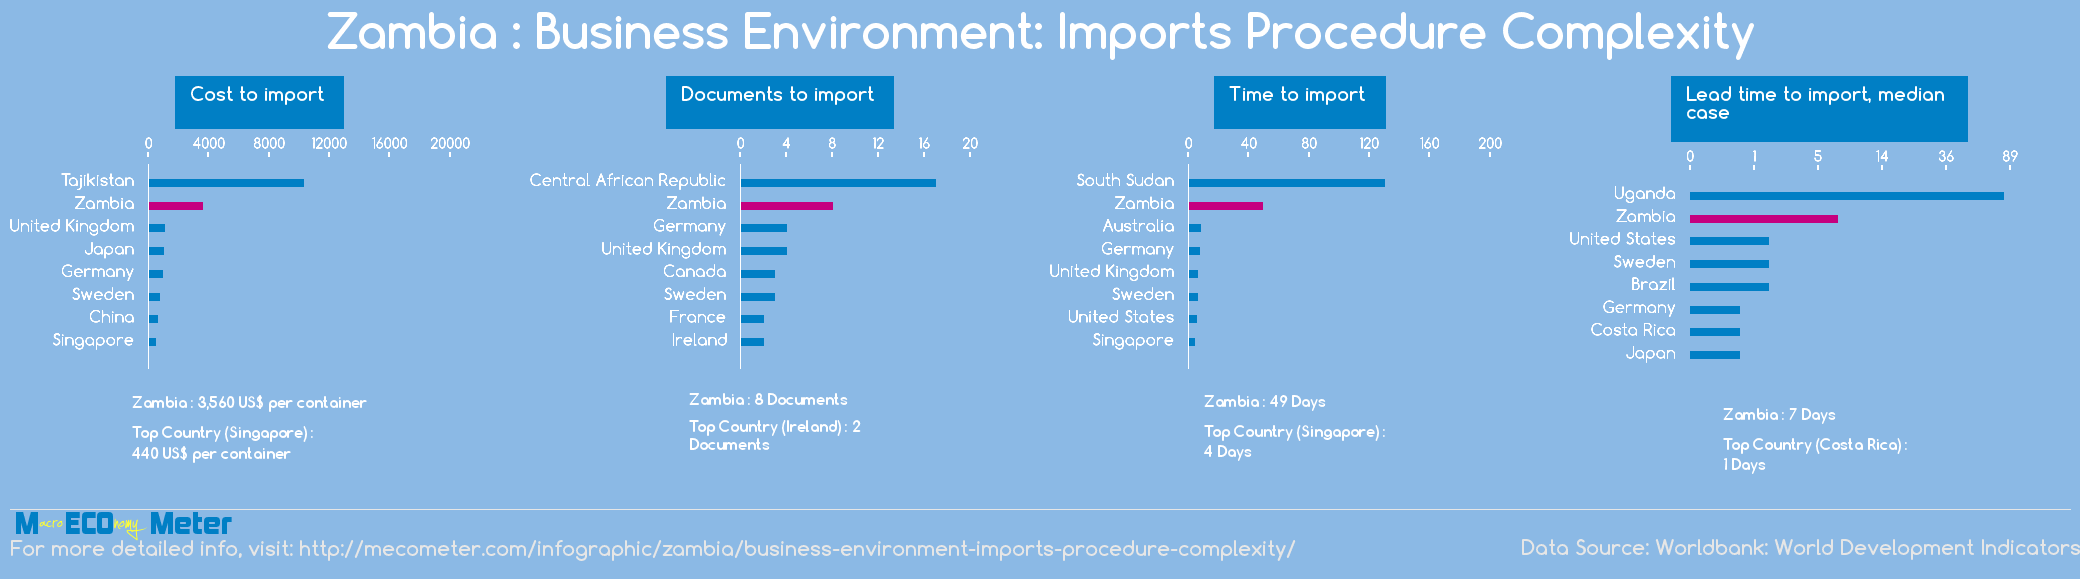 Zambia : Business Environment: Imports Procedure Complexity